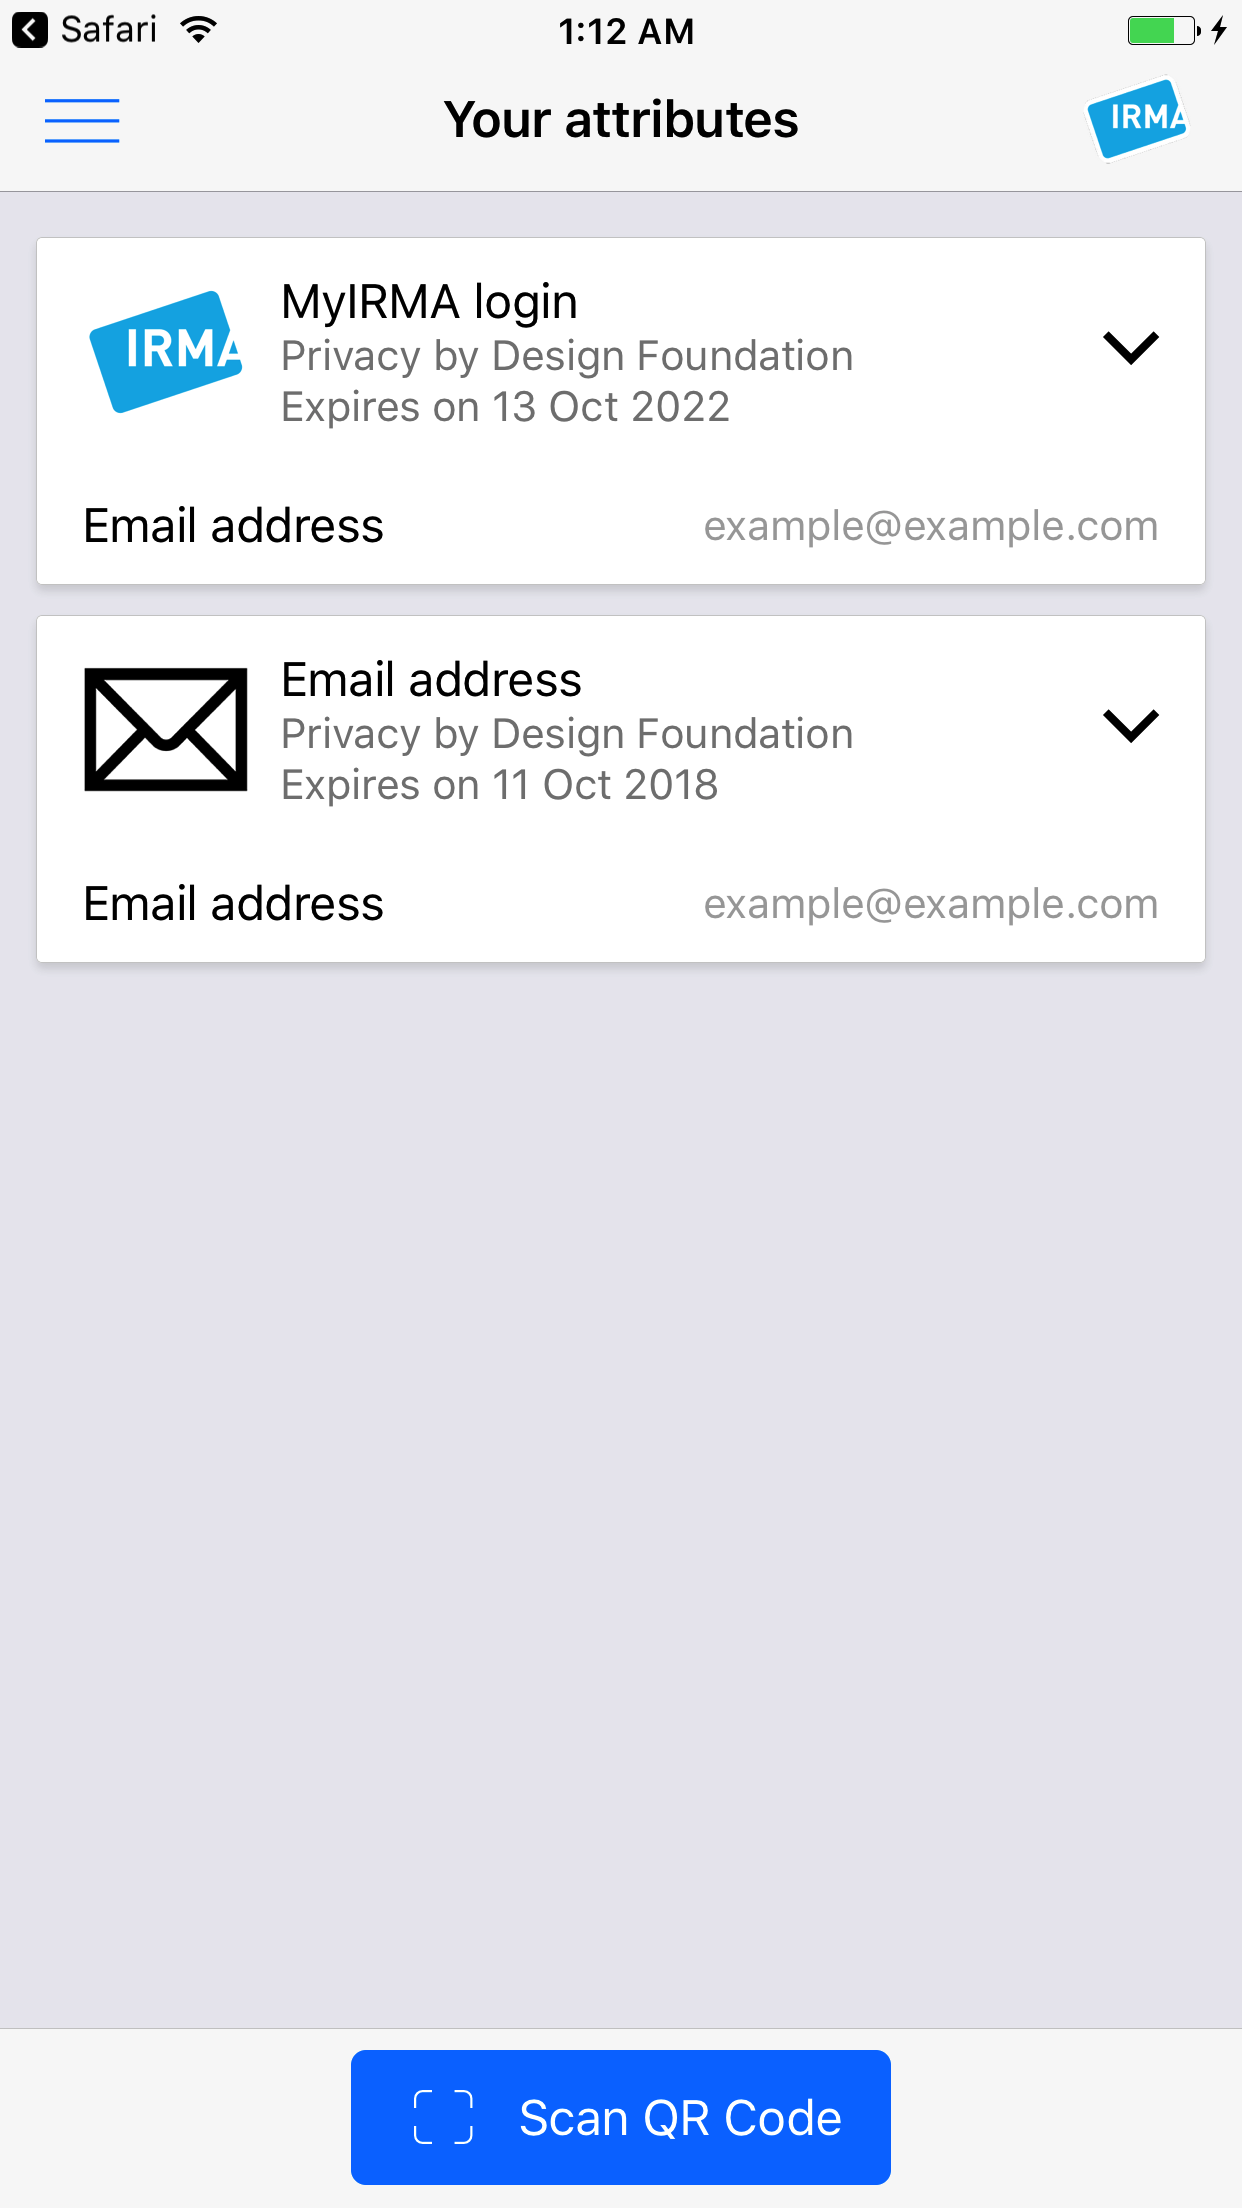 Screenshot of the IRMA app on iOS, showing the 'Your Attributes' screen with two credentials.